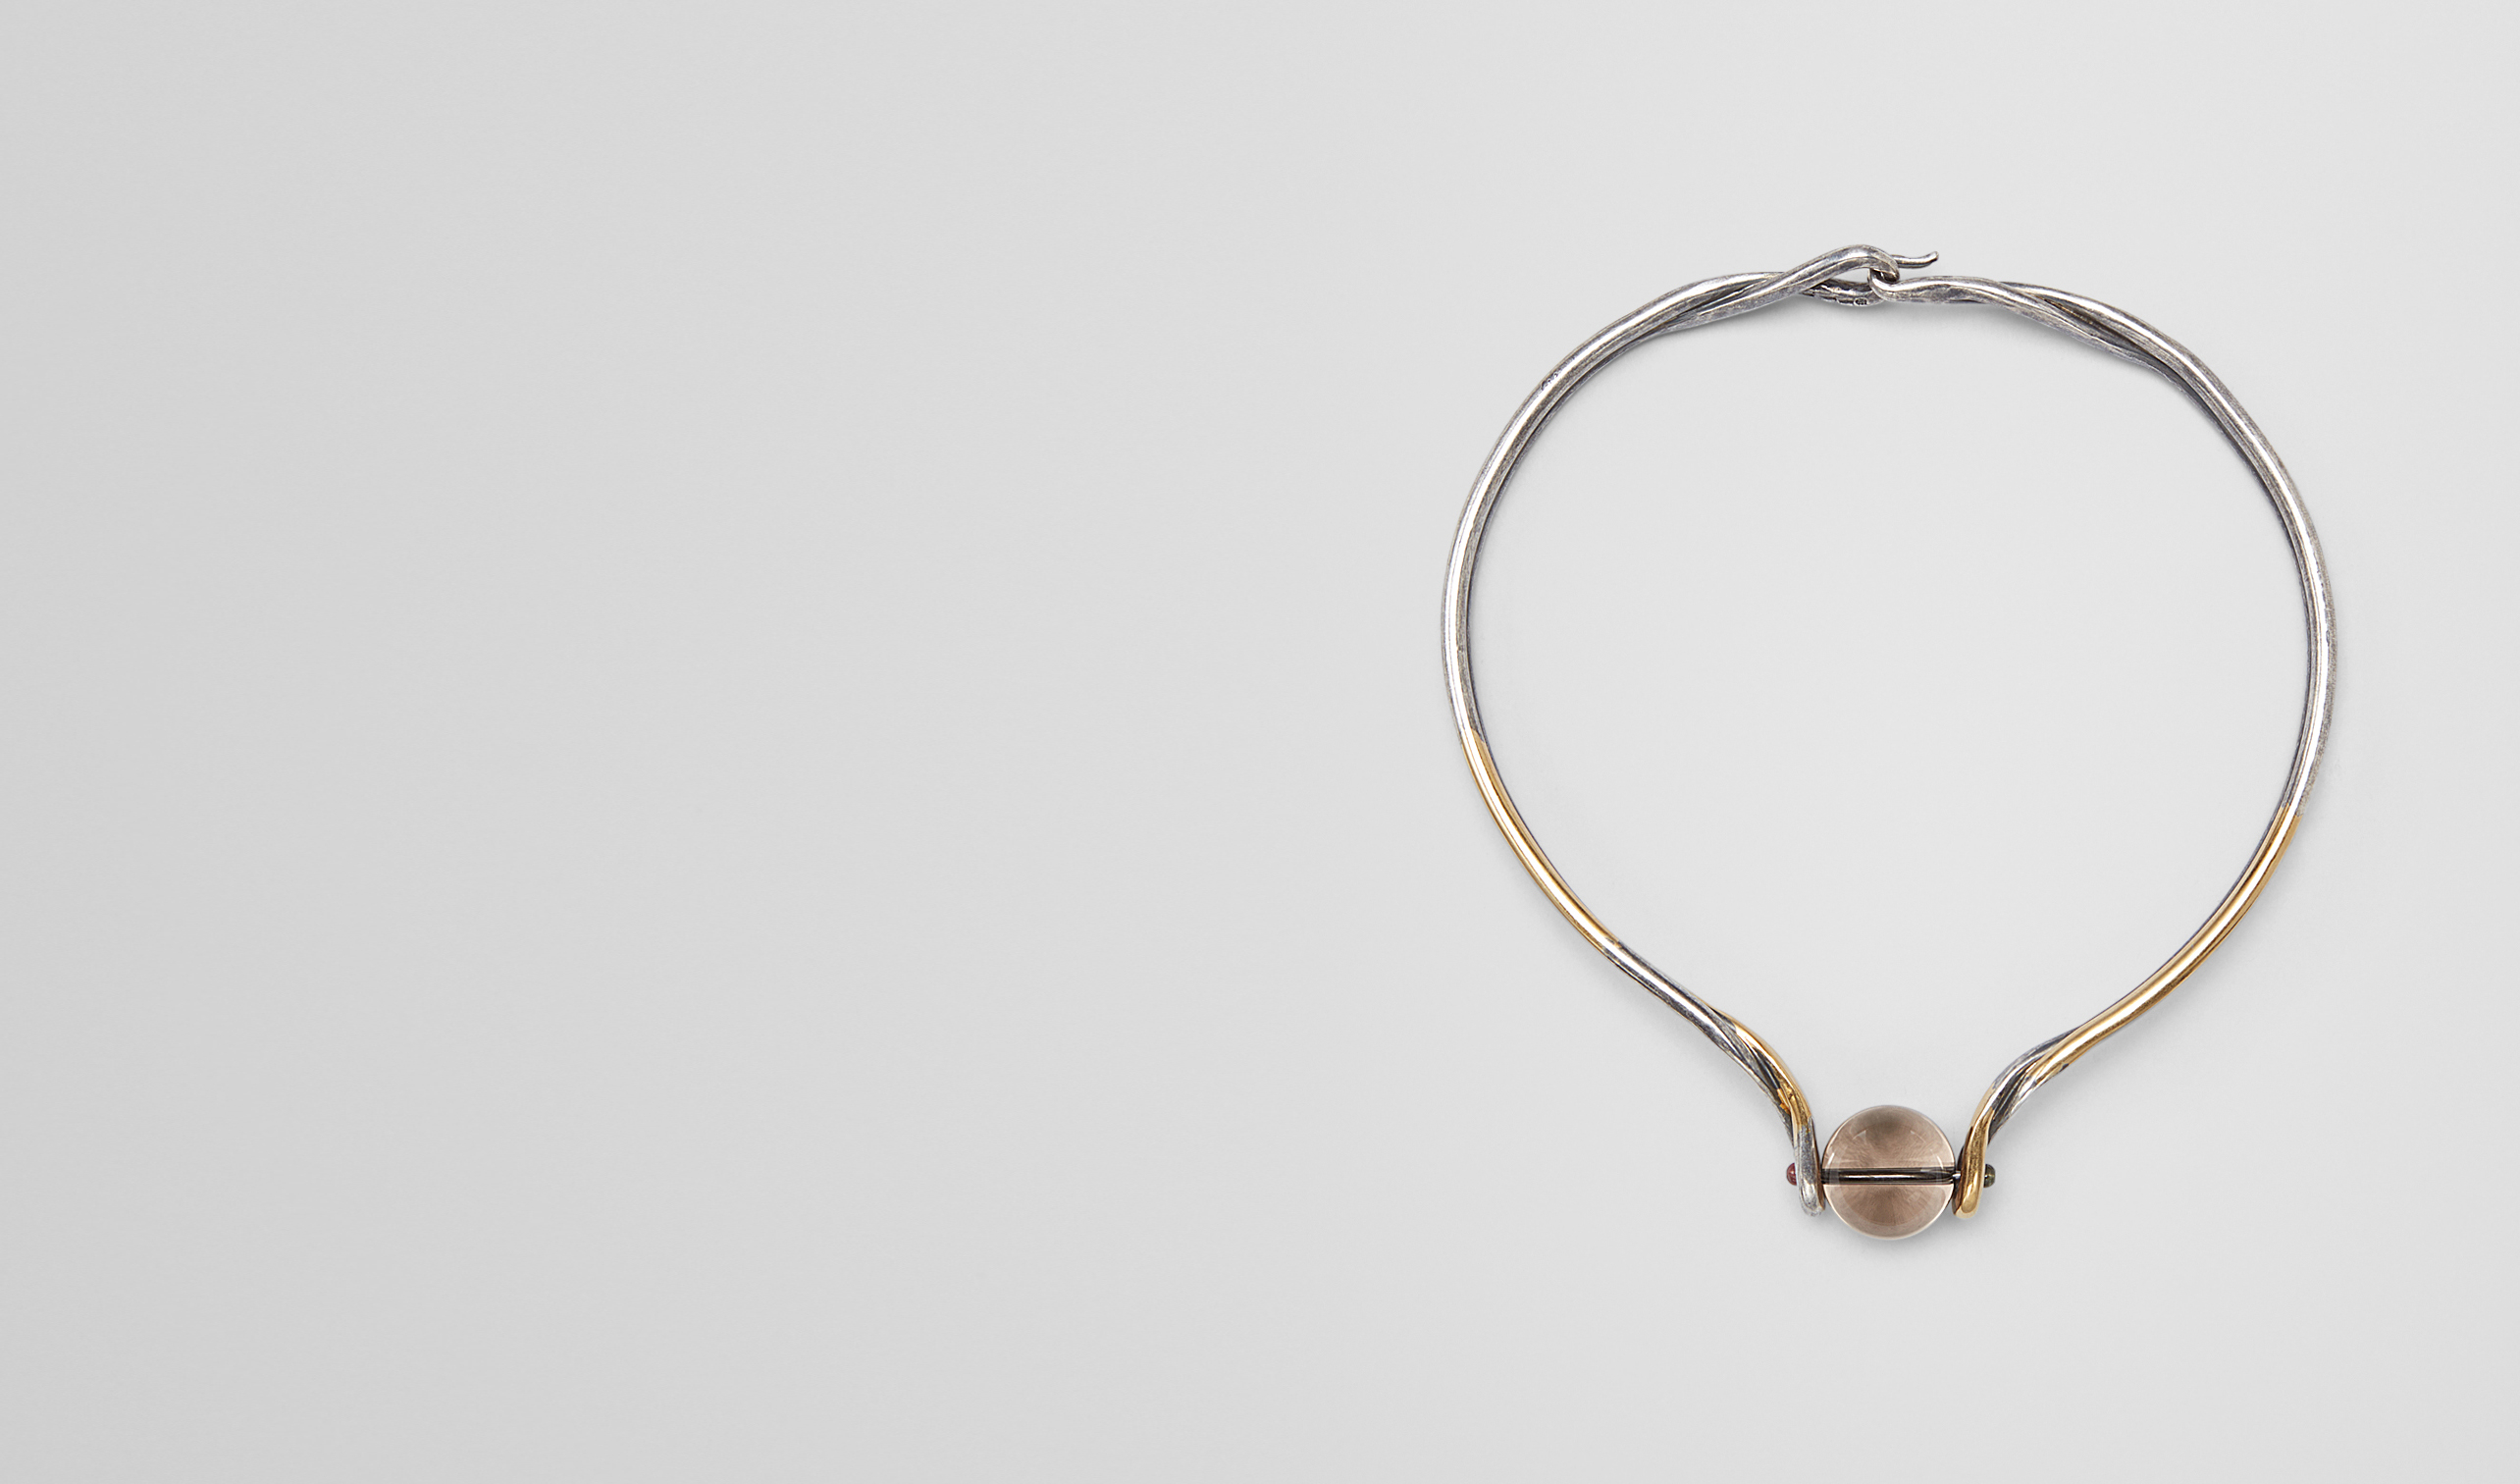 BOTTEGA VENETA Necklace D NECKLACE IN SILVER, SMOKY QUARTZ AND TOURMALINE STONES WITH YELLOW GOLD ACCENTS pl